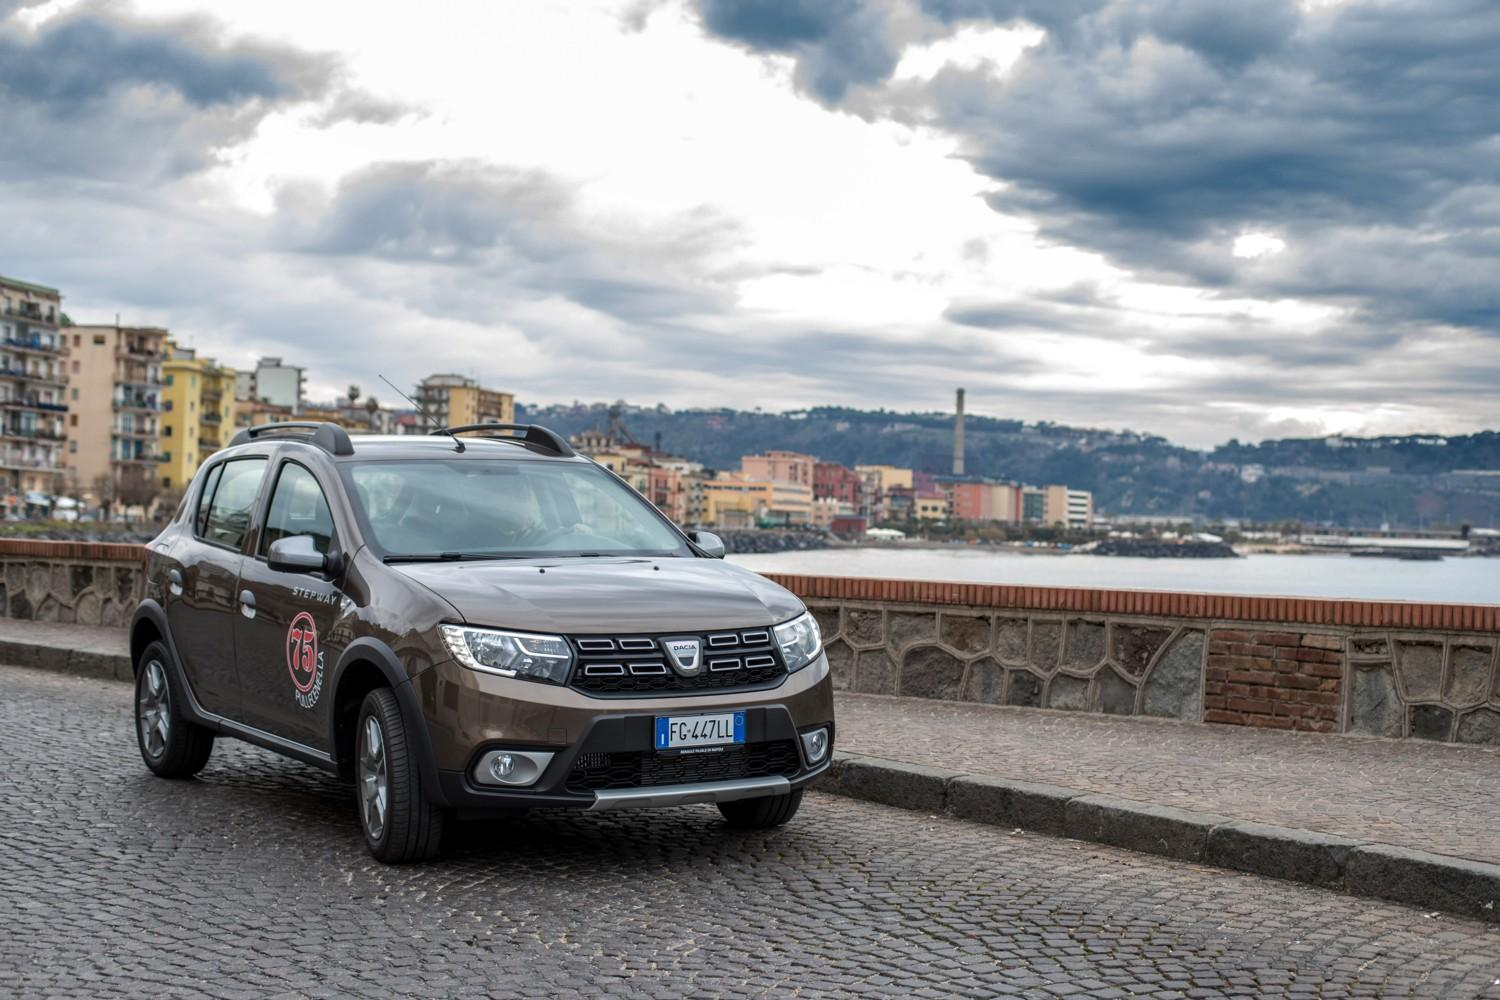 Dacia nuova gamma Sandero